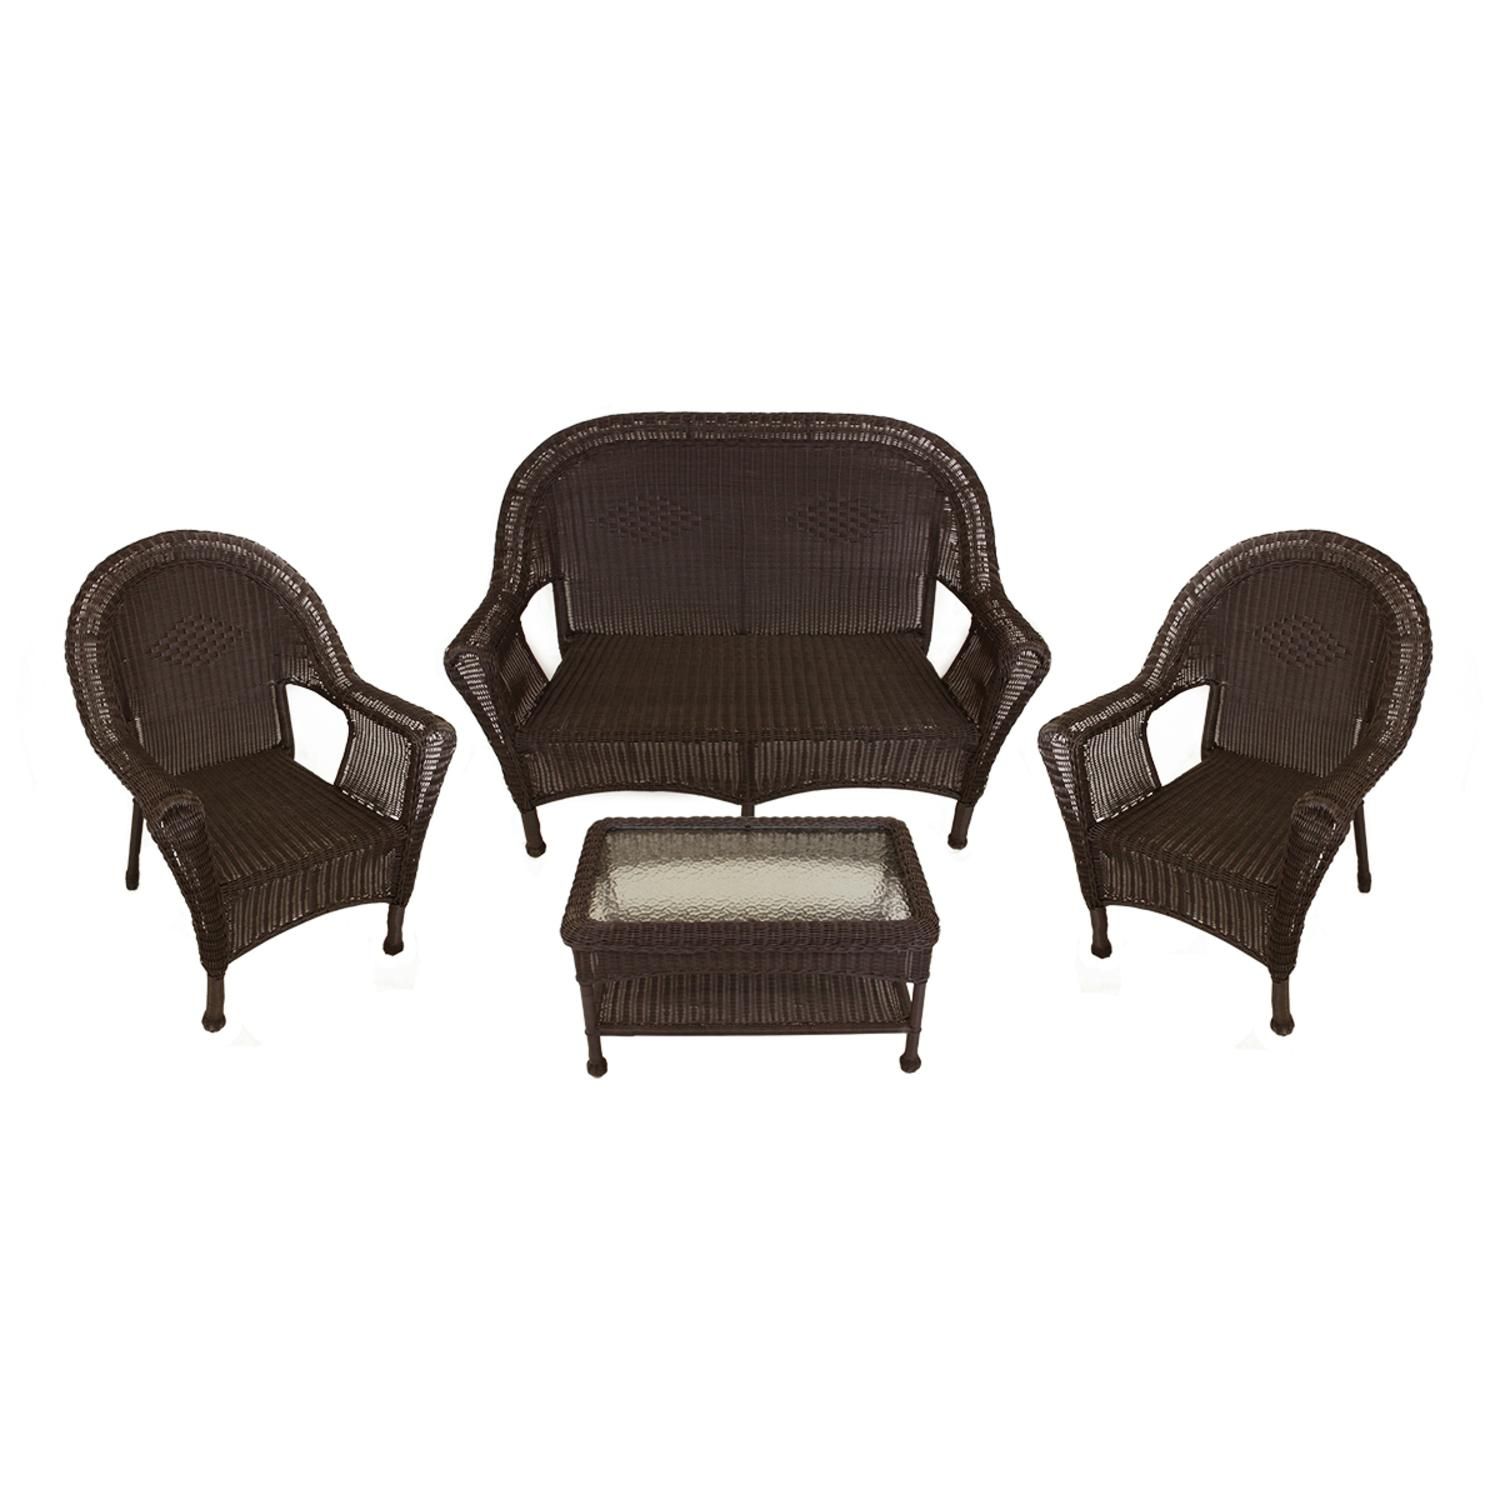 4piece brown resin wicker patio furniture set 2 chairs loveseat u0026 table